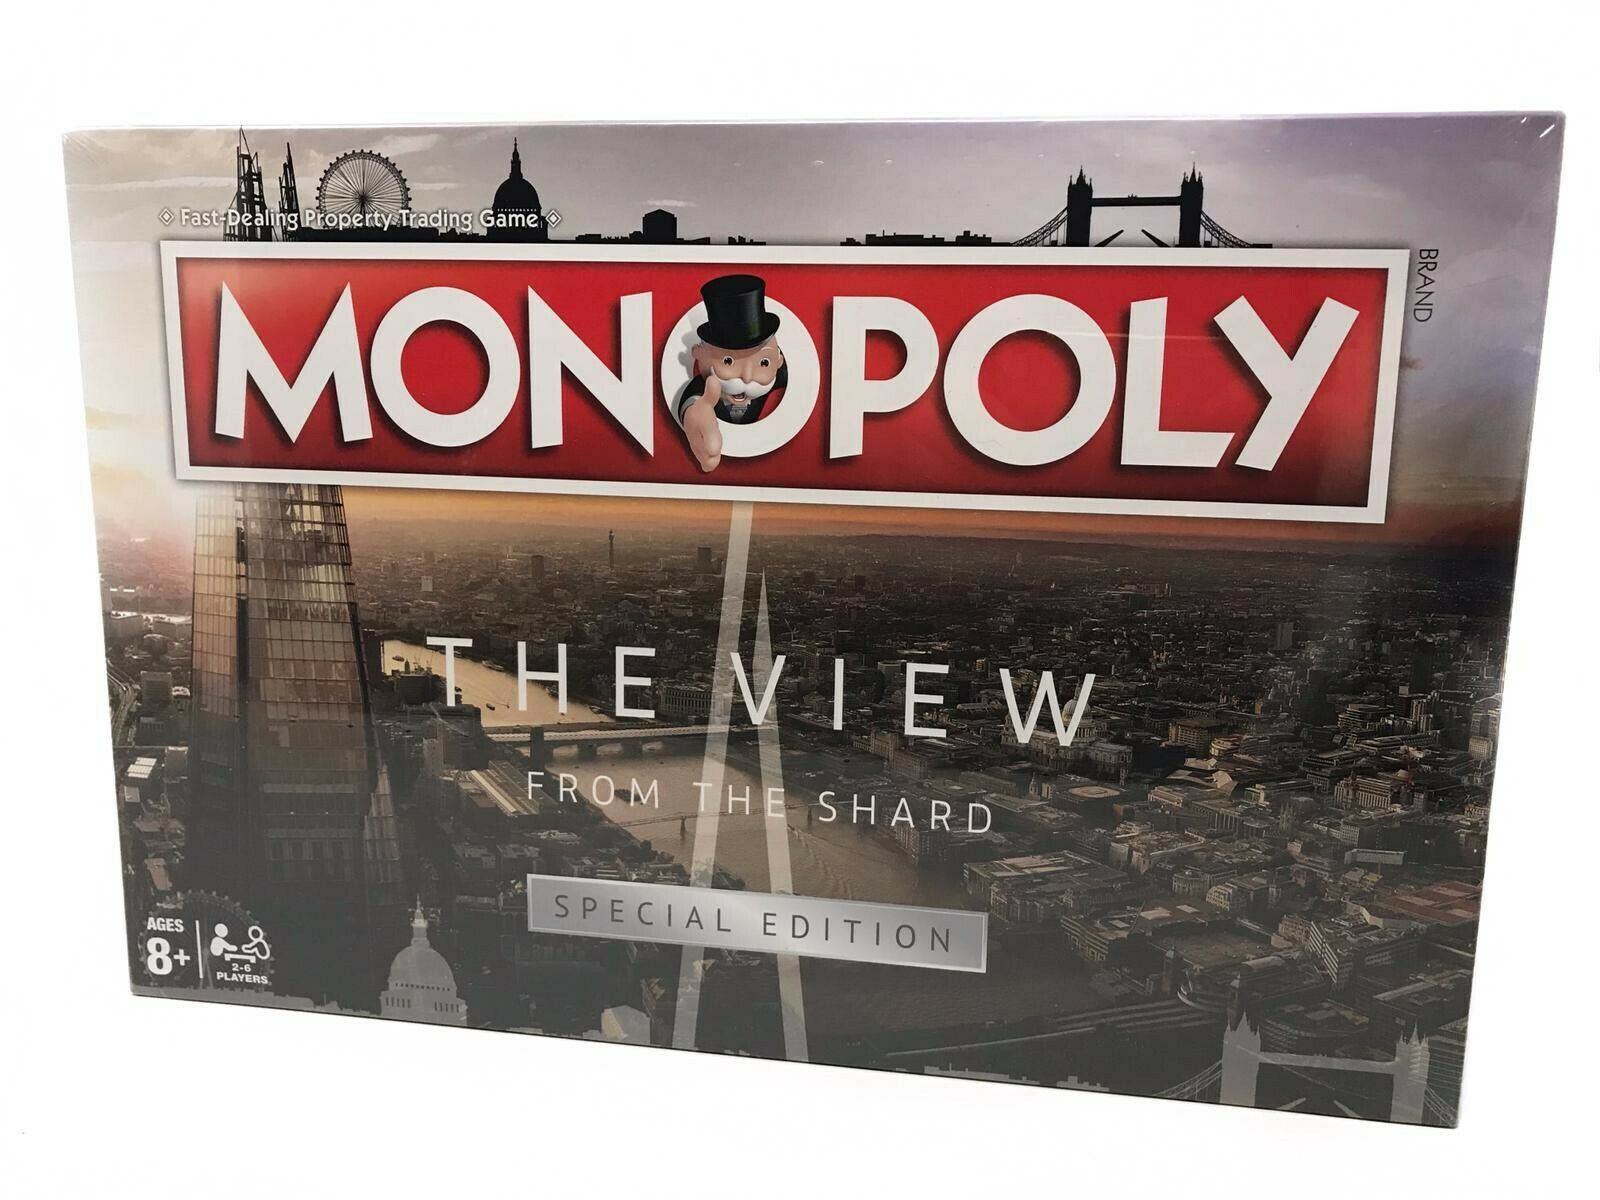 Extrêmement RARE Monopoly Board Game The View From The Shard Edition